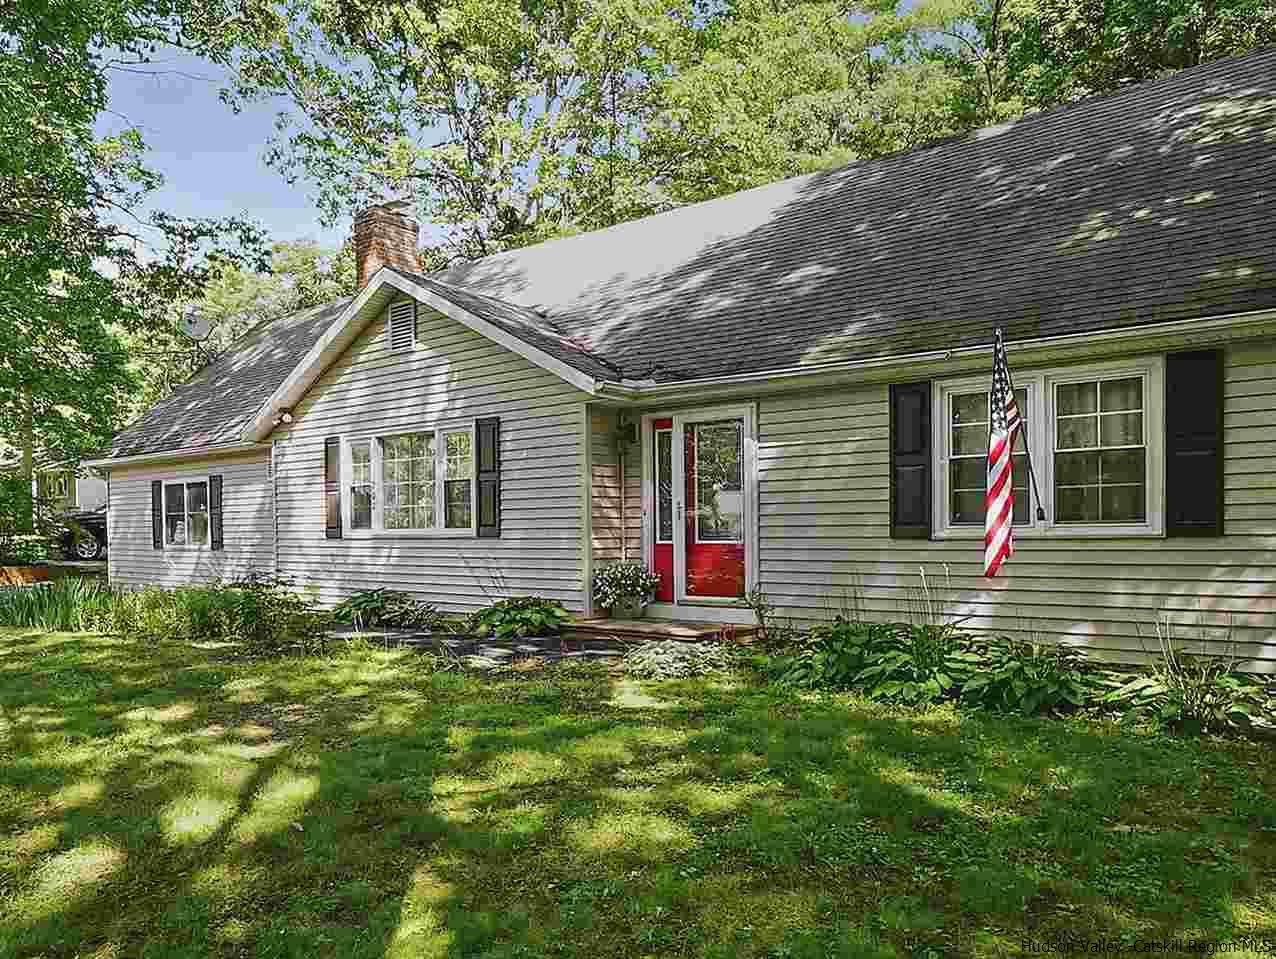 Single Family Home for Sale at 200 Harry Wells Road 200 Harry Wells Road Saugerties, New York 12477 United States